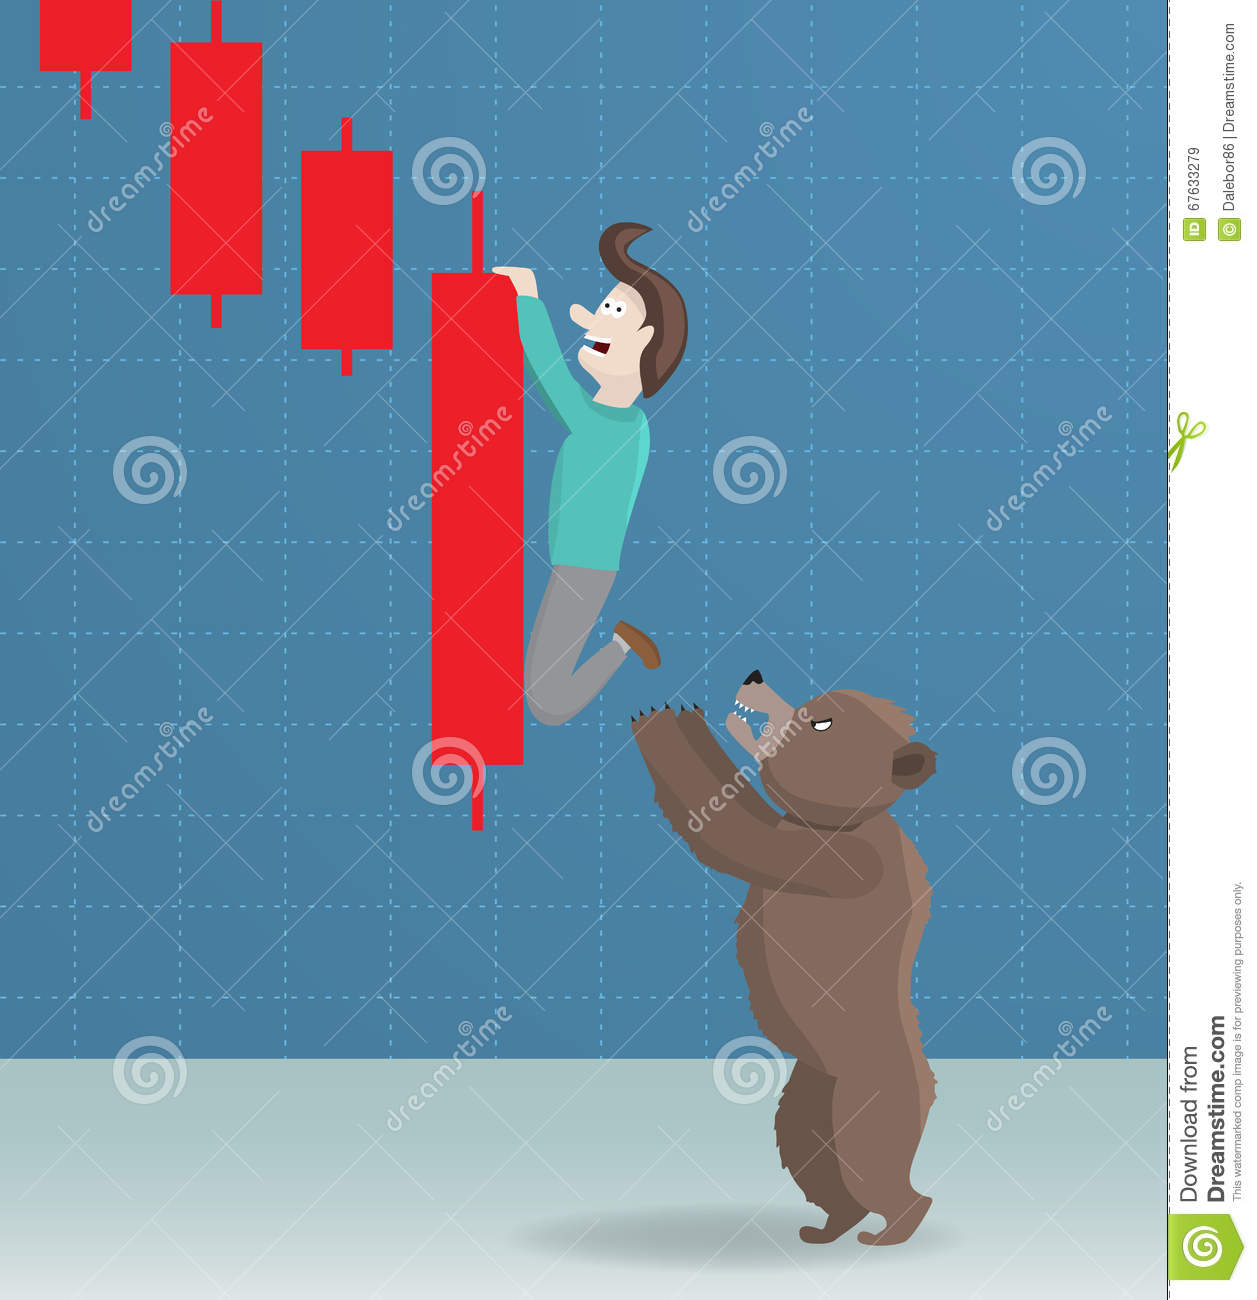 Bear and stock market decline.